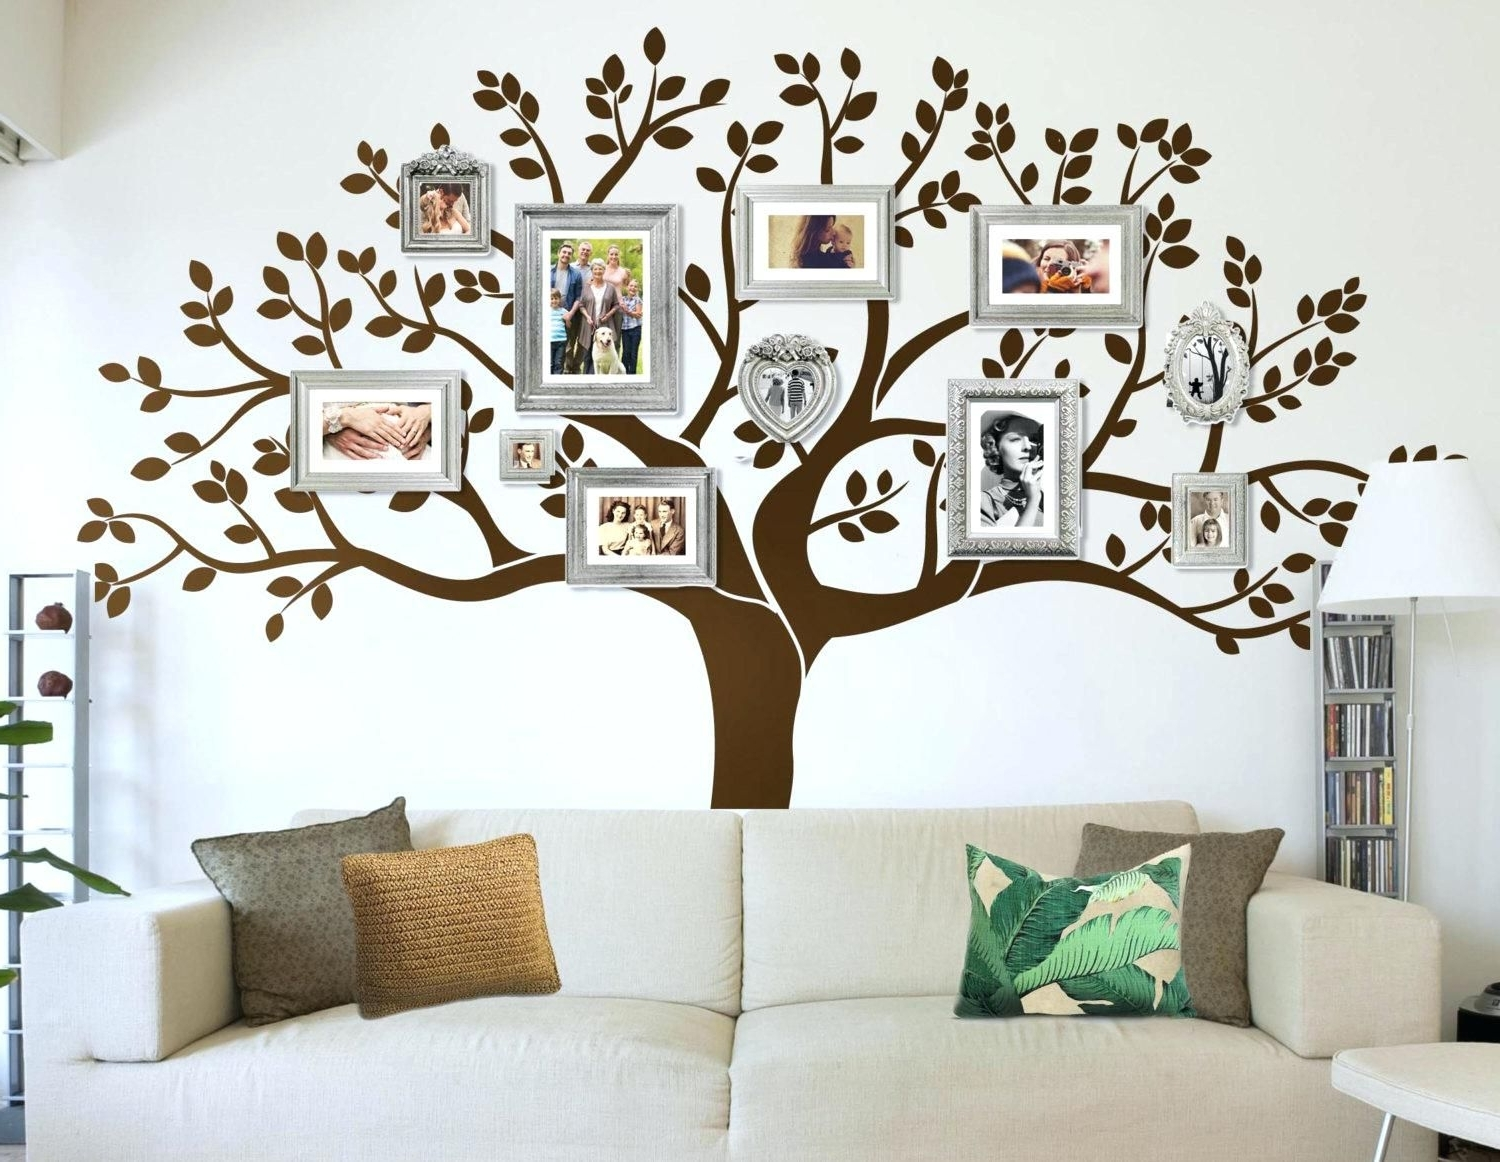 Fashionable Stunning Large Wood Tree Wall Decor Art On Designs Decoration Diy Intended For Tree Wall Art (View 13 of 15)